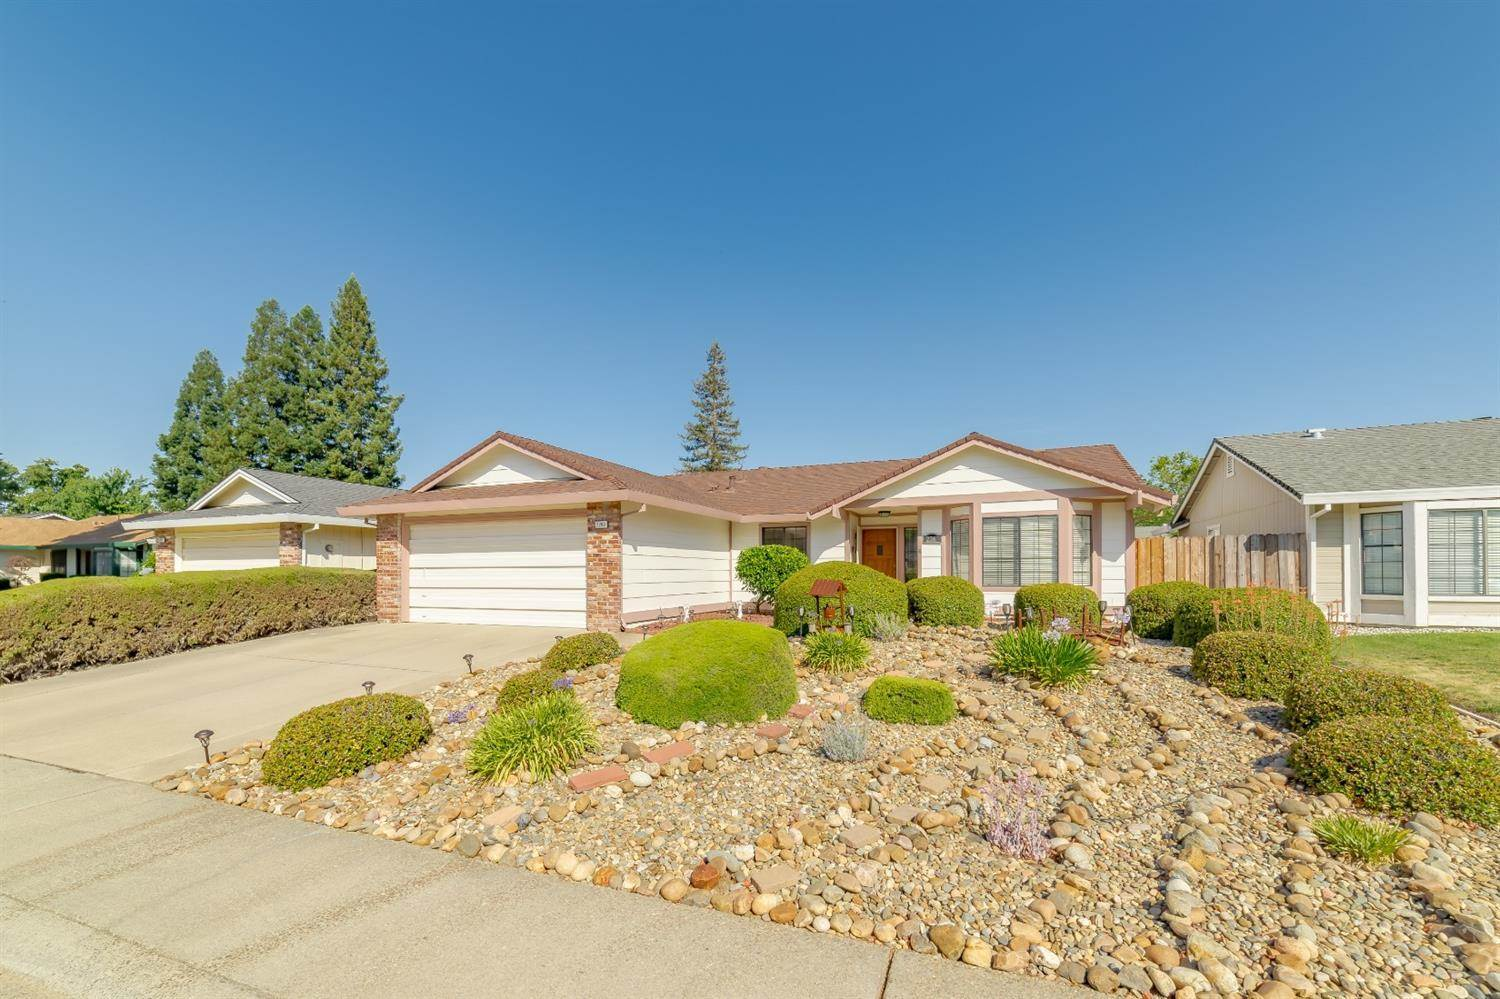 2269 Independence Way, Roseville, CA 95747